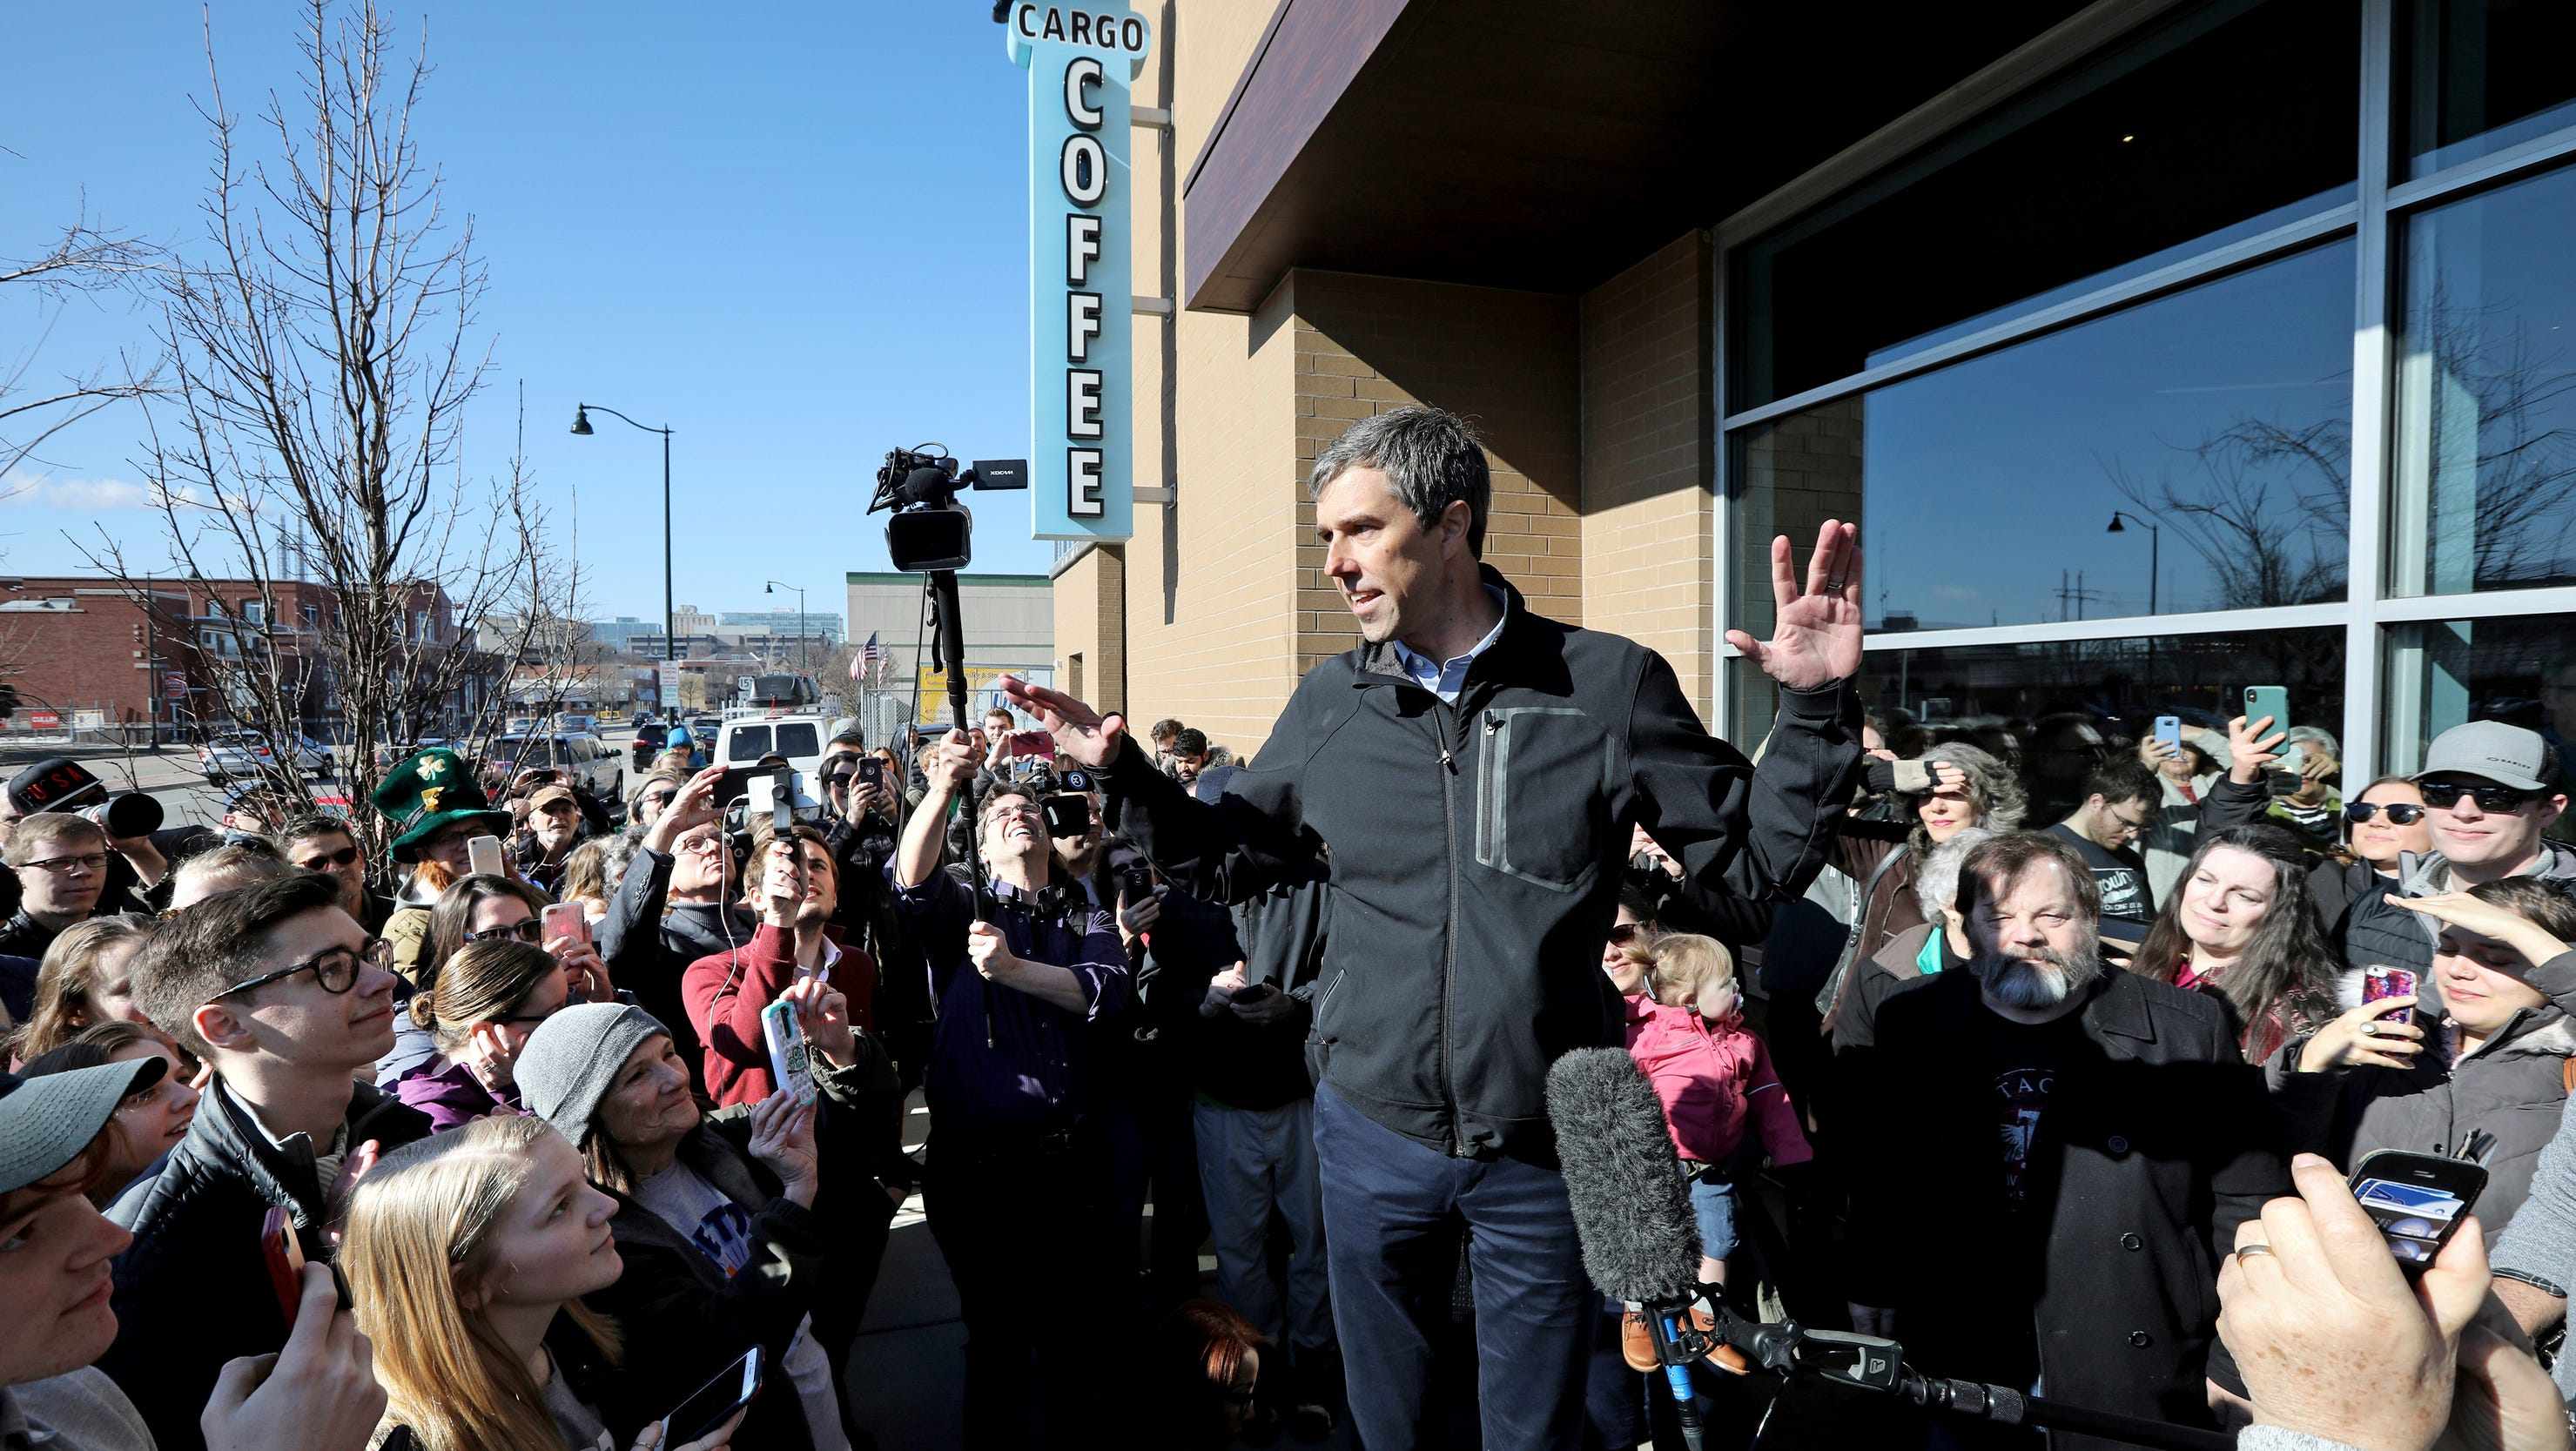 Democratic presidential candidate Beto O'Rourke talks to a crowd of people on Sunday outside Cargo Coffee in Madison, Wisconsin.